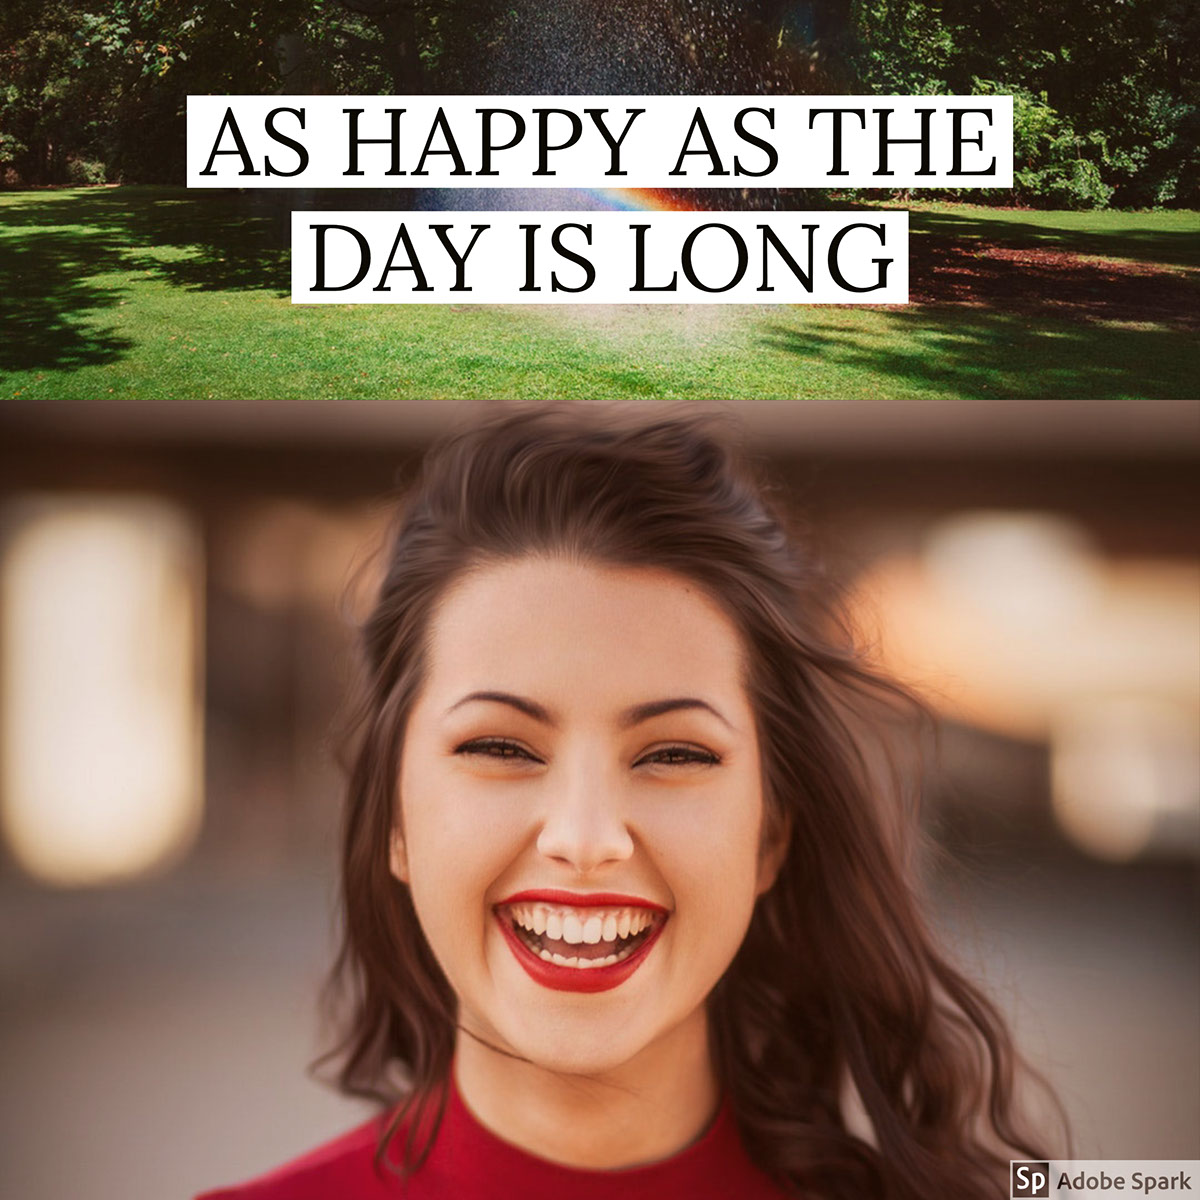 AS HAPPY AS THE DAY IS LONG AS HAPPY AS THE DAY IS LONG